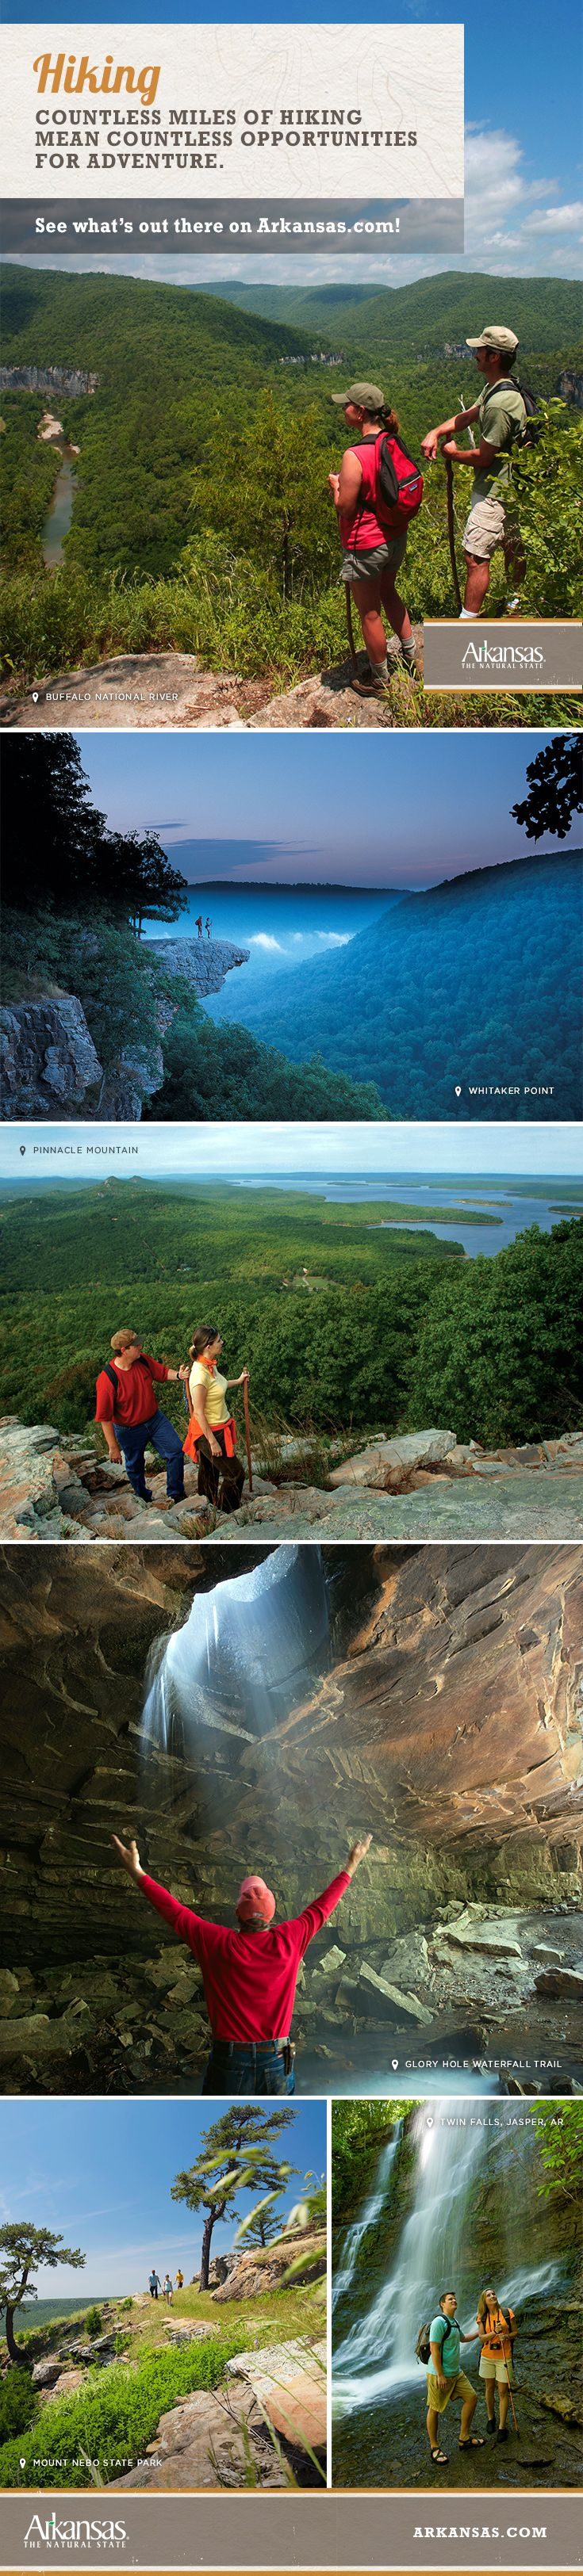 Countless miles of hiking mean countless opportunities for adventure. See what's out there on Arkansas.com!